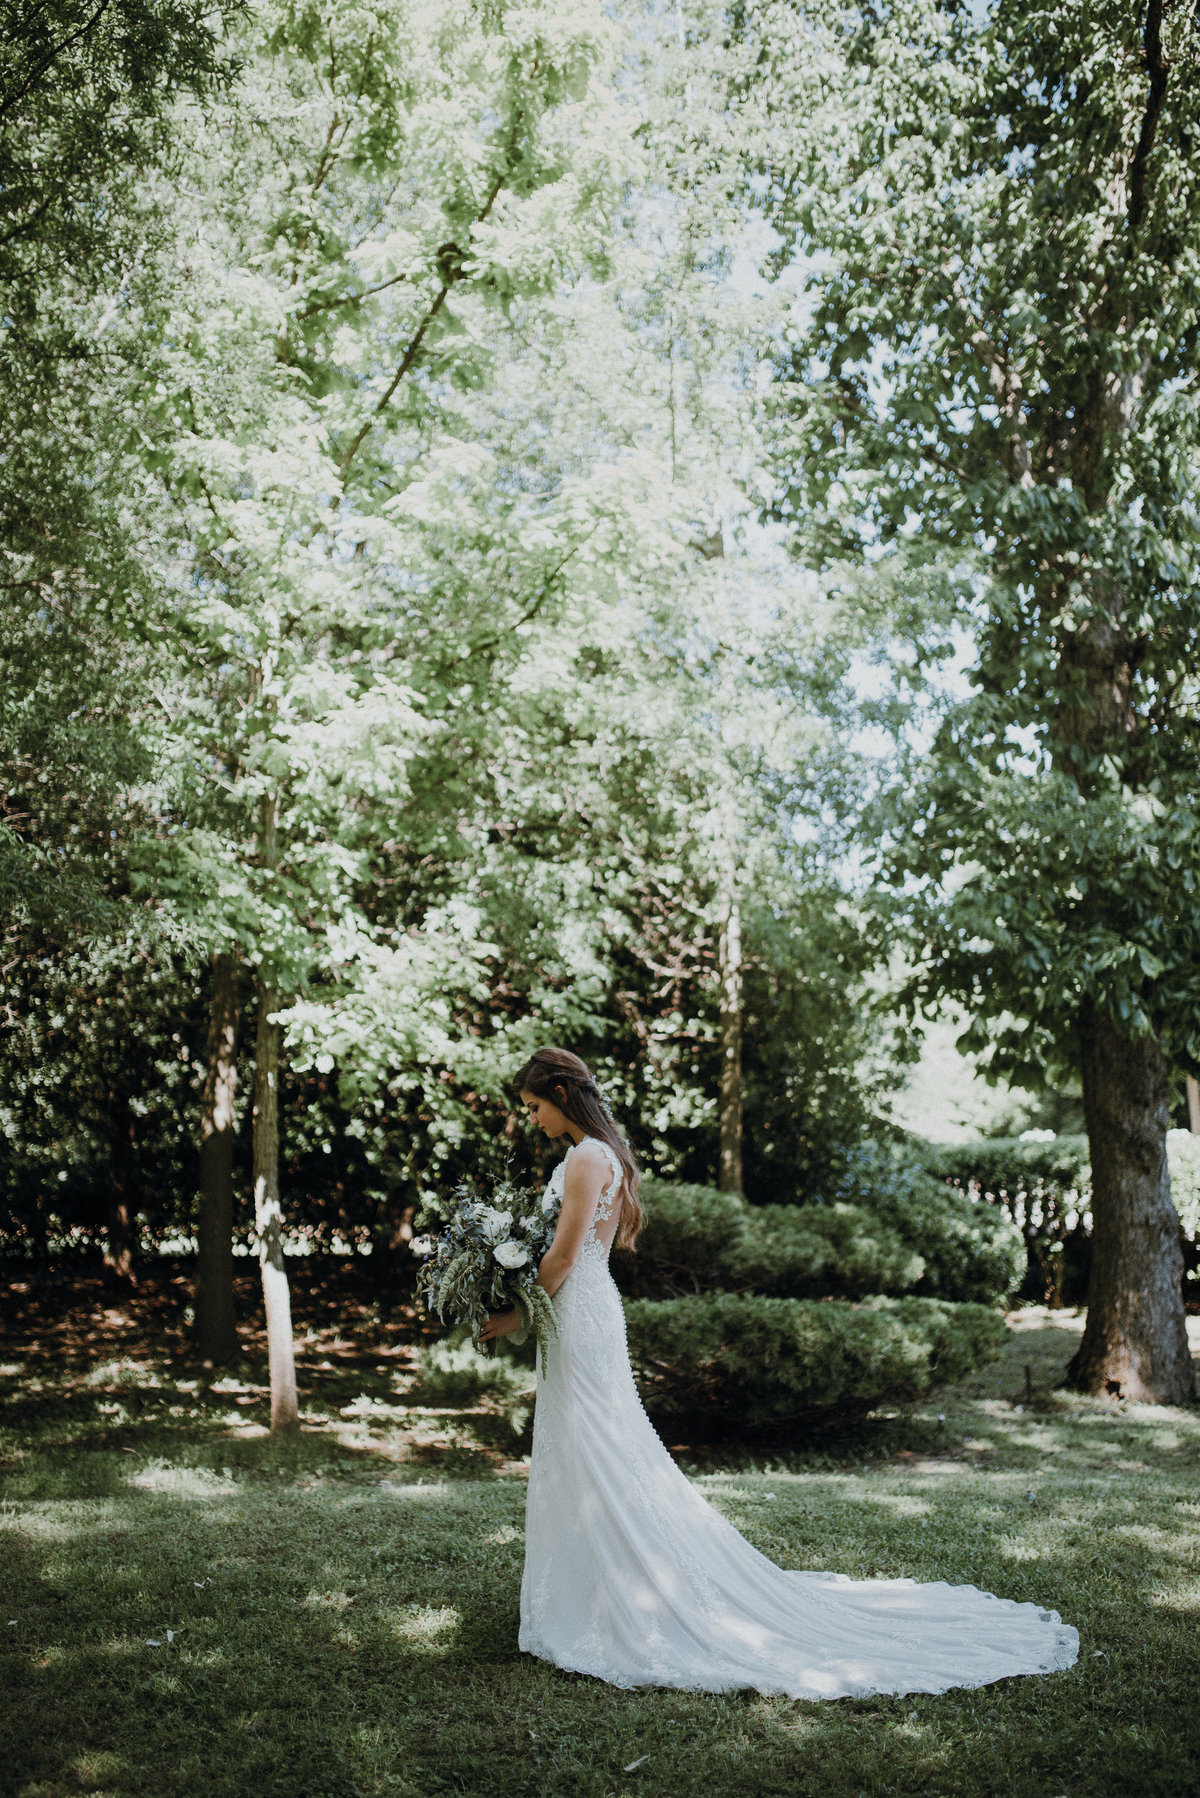 Bride's portrait just before she walks down the aisle at her beautiful Arkansas wedding at Adams Estate